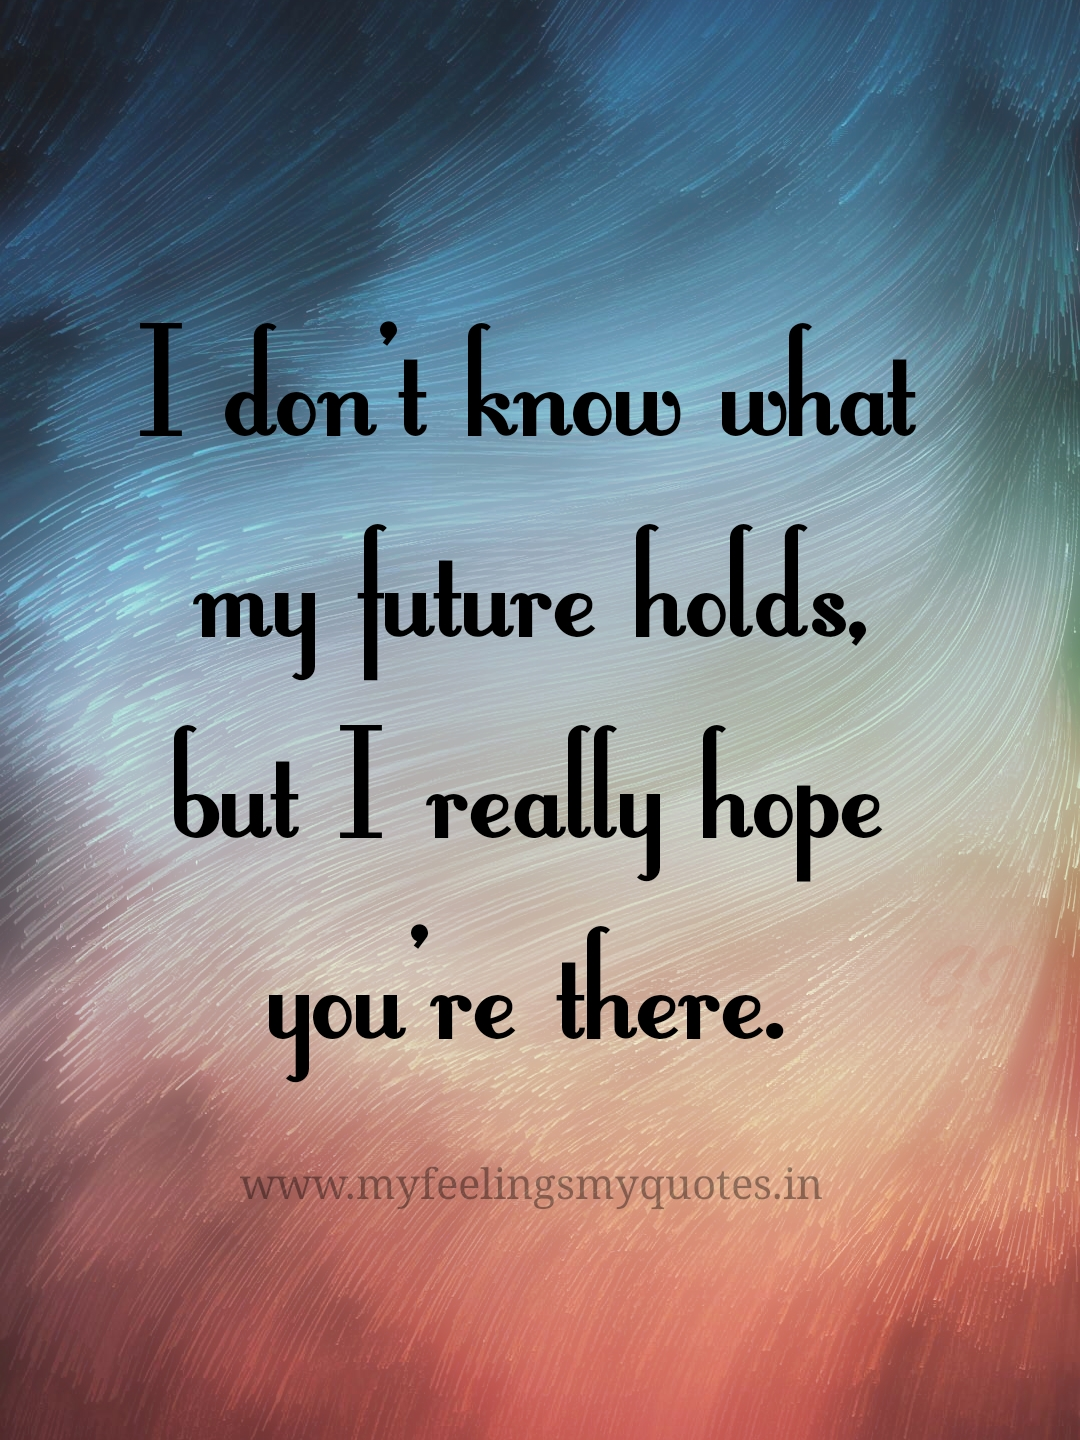 What my future holds | My Feelings My Quotes